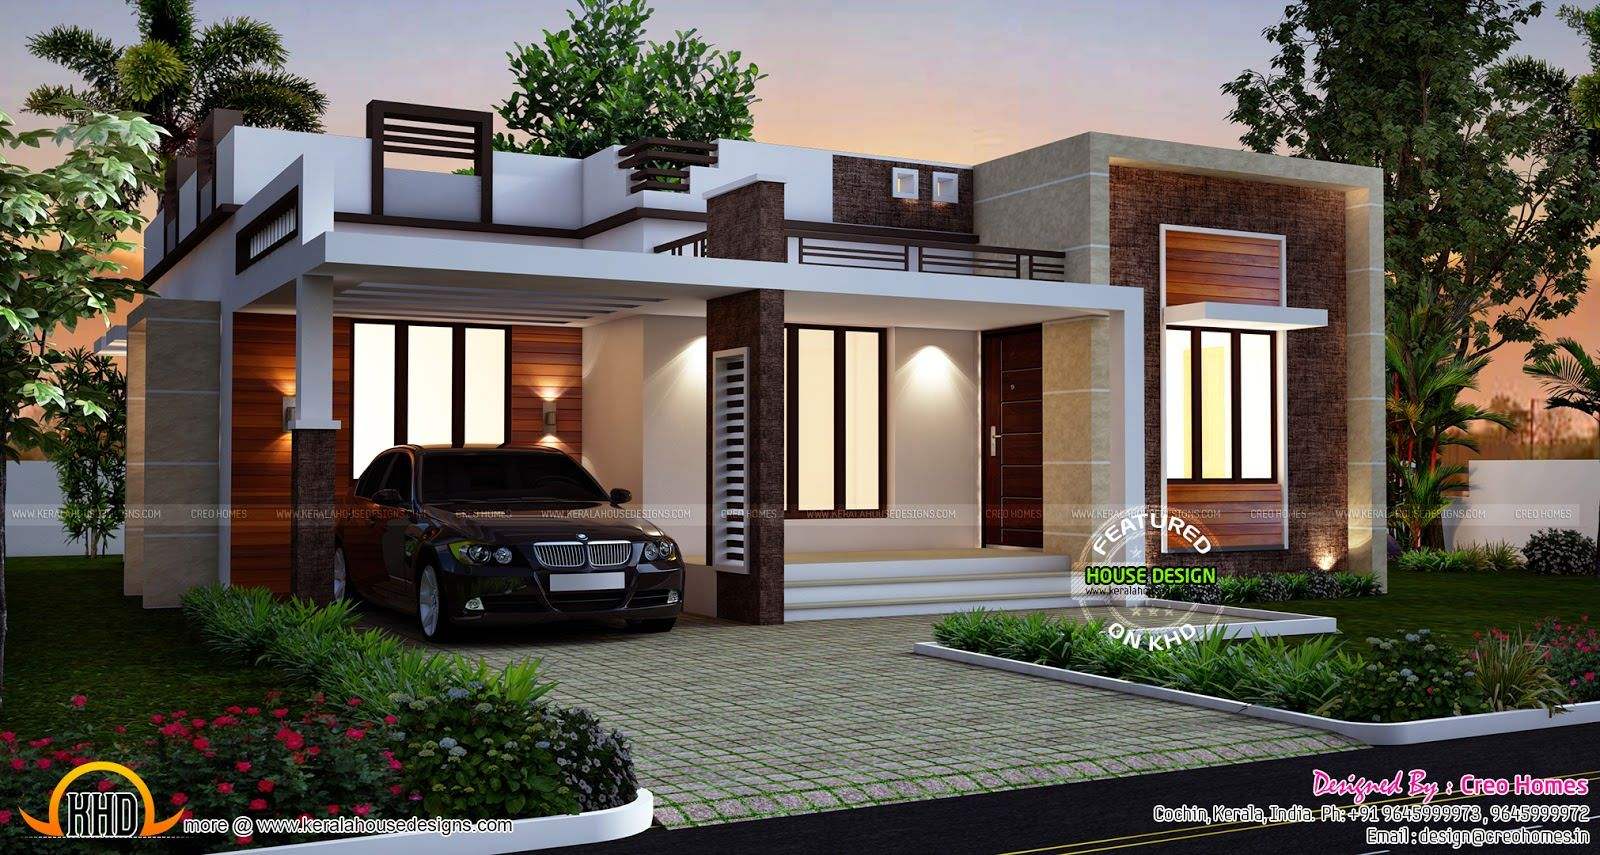 Designs homes design single story flat roof house plans House designs single floor